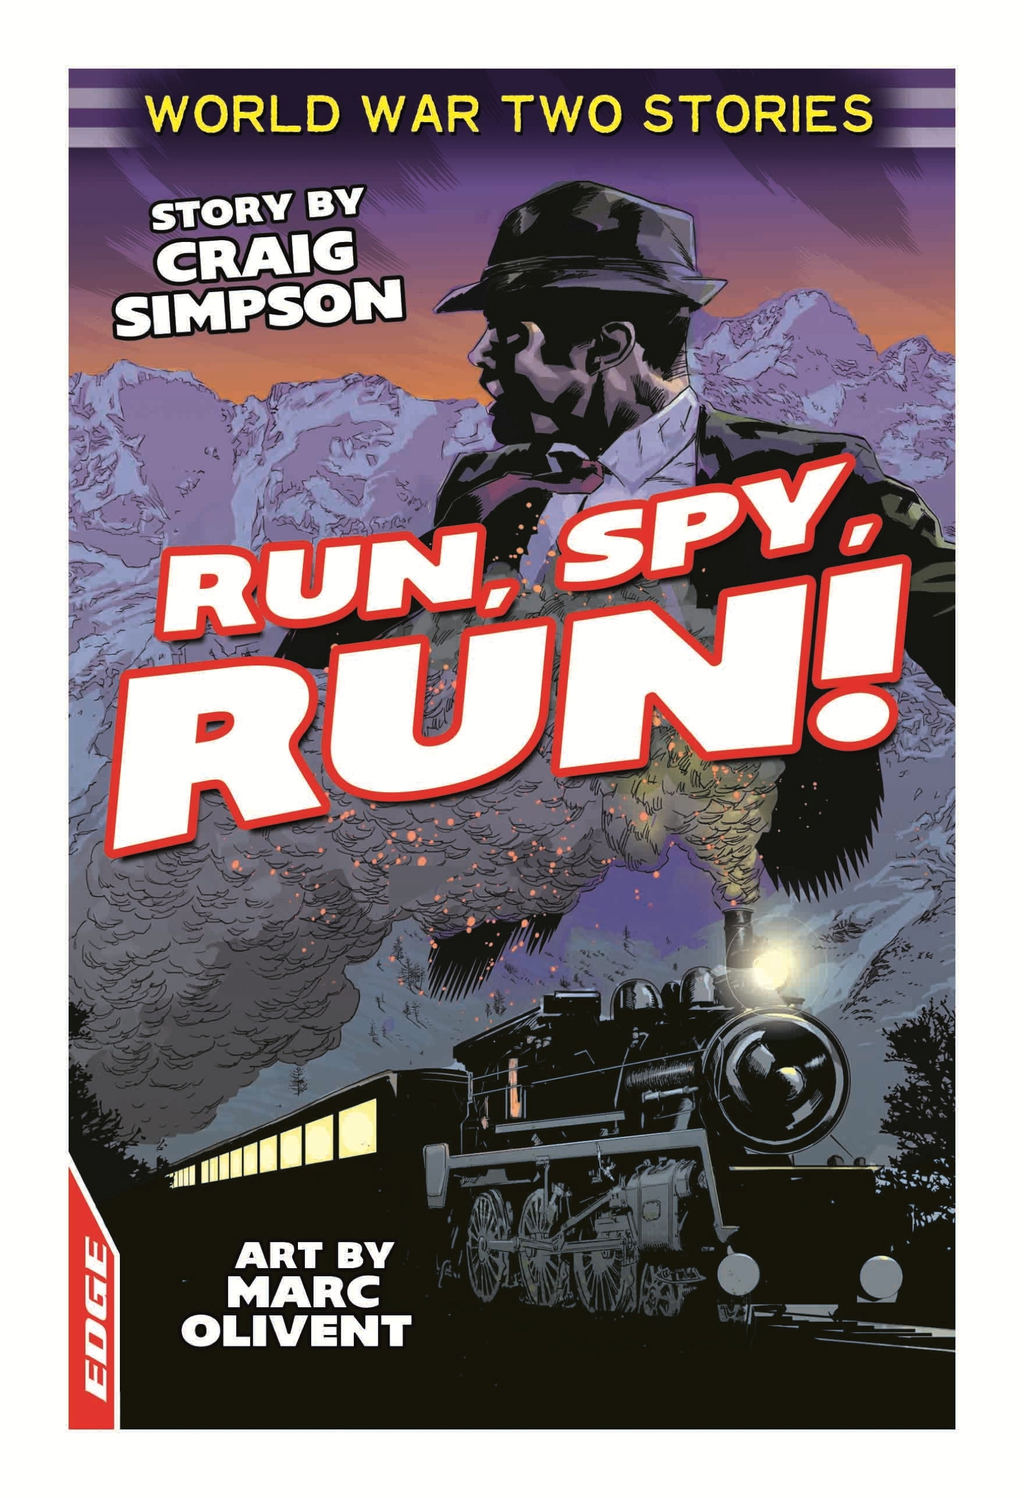 EDGE: World War Two Short Stories: Run,  Spy,  Run!